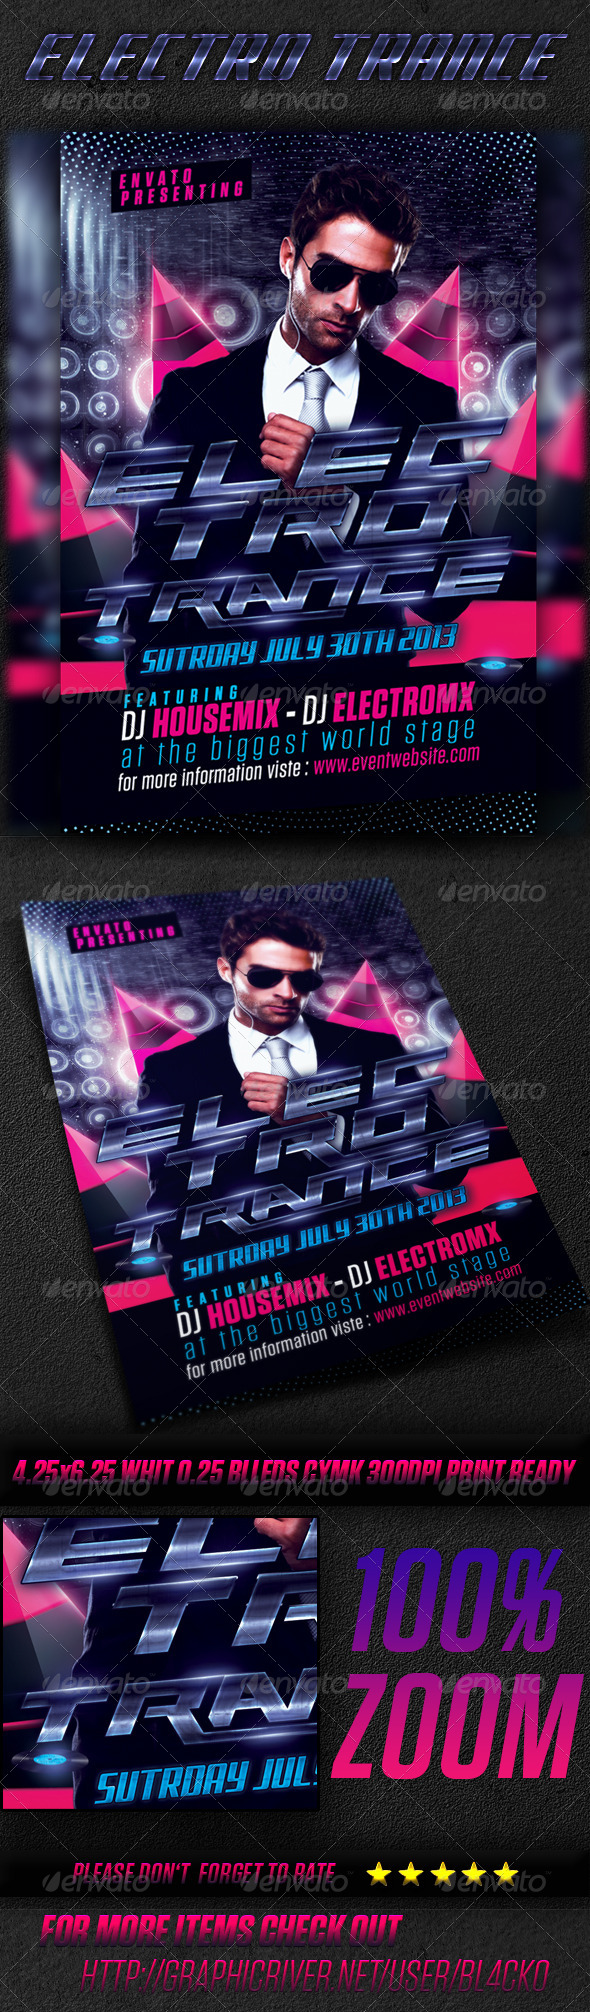 GraphicRiver Electro Trance Flyer 4727259